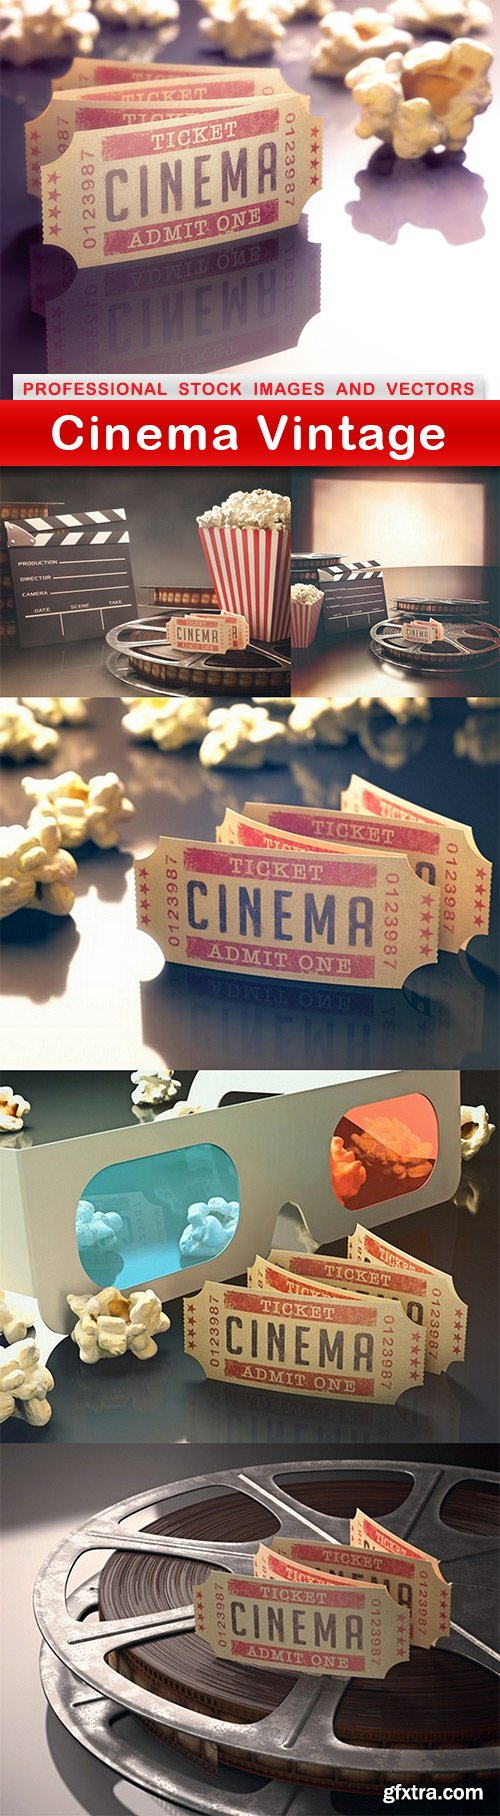 Cinema Vintage - 6 UHQ JPEG